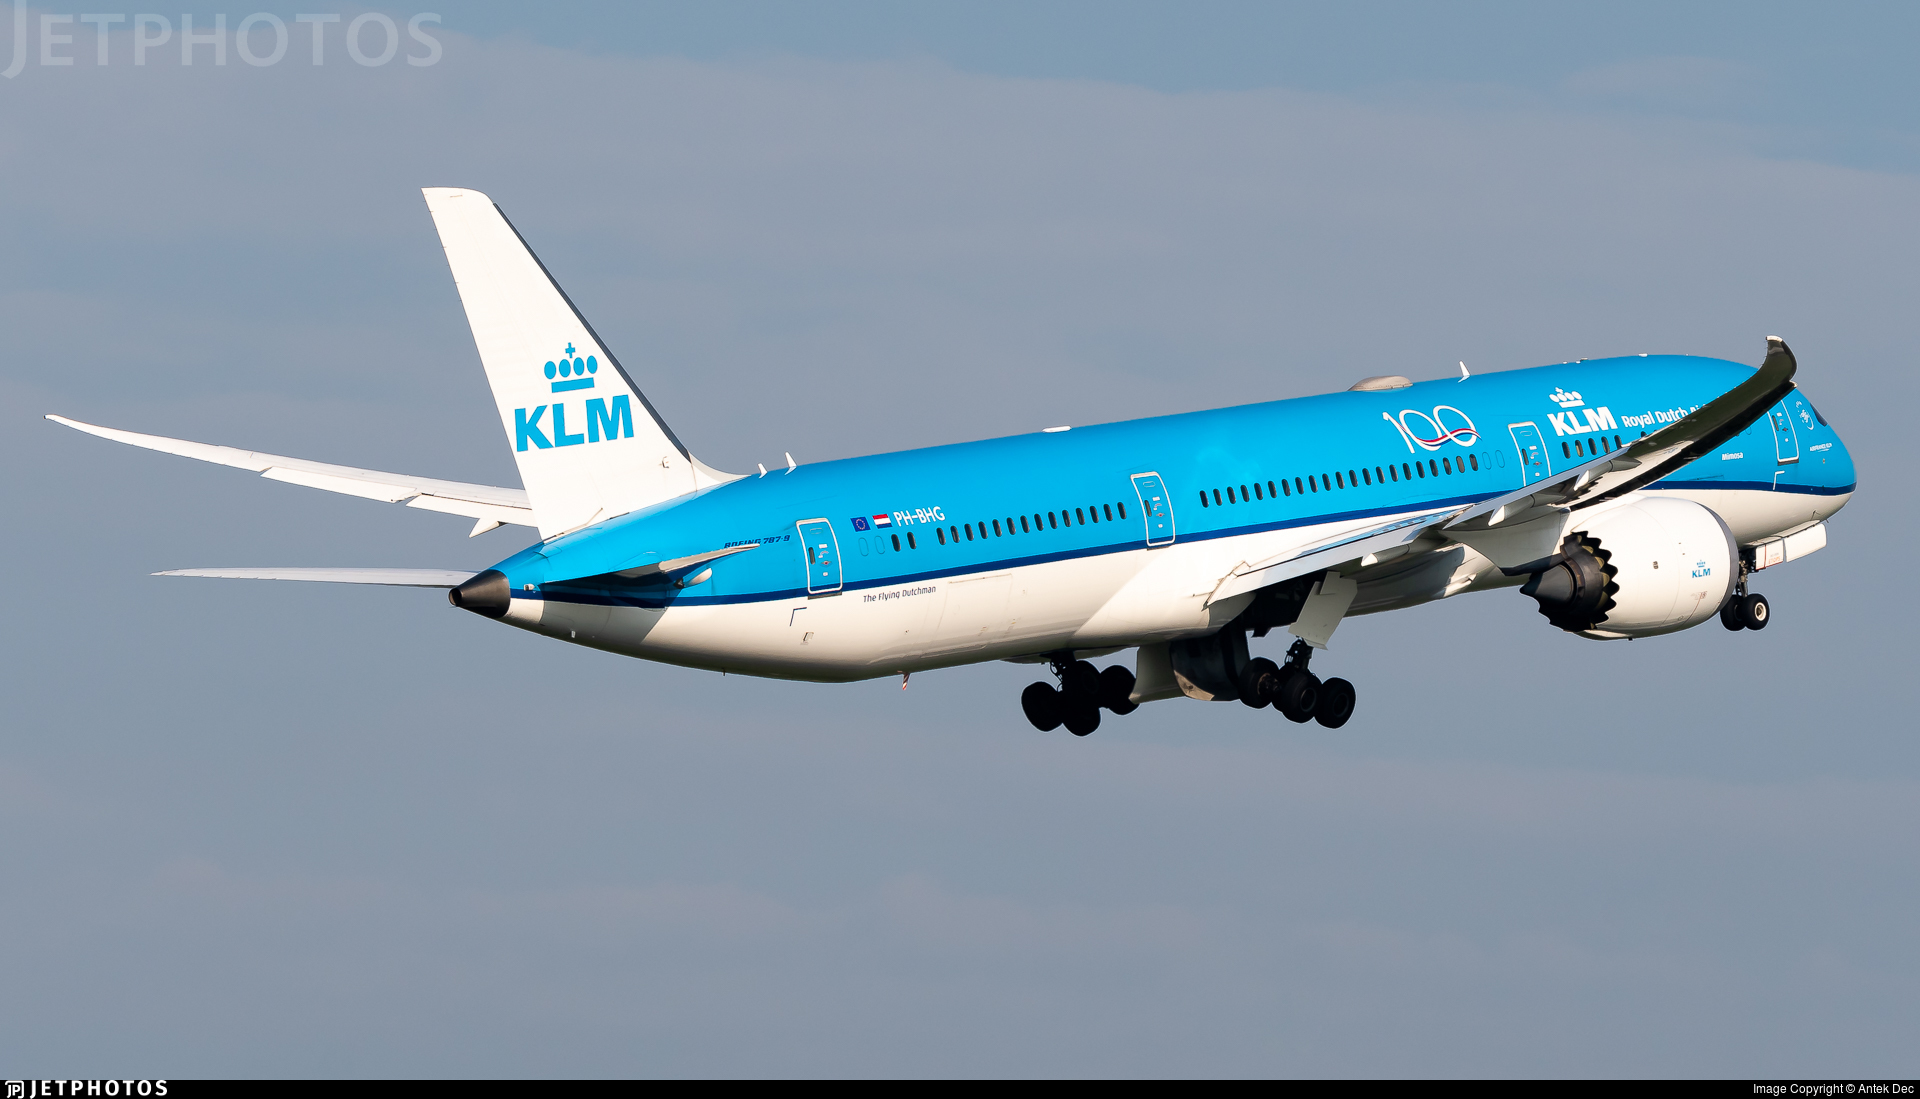 PH-BHG - Boeing 787-9 Dreamliner - KLM Royal Dutch Airlines